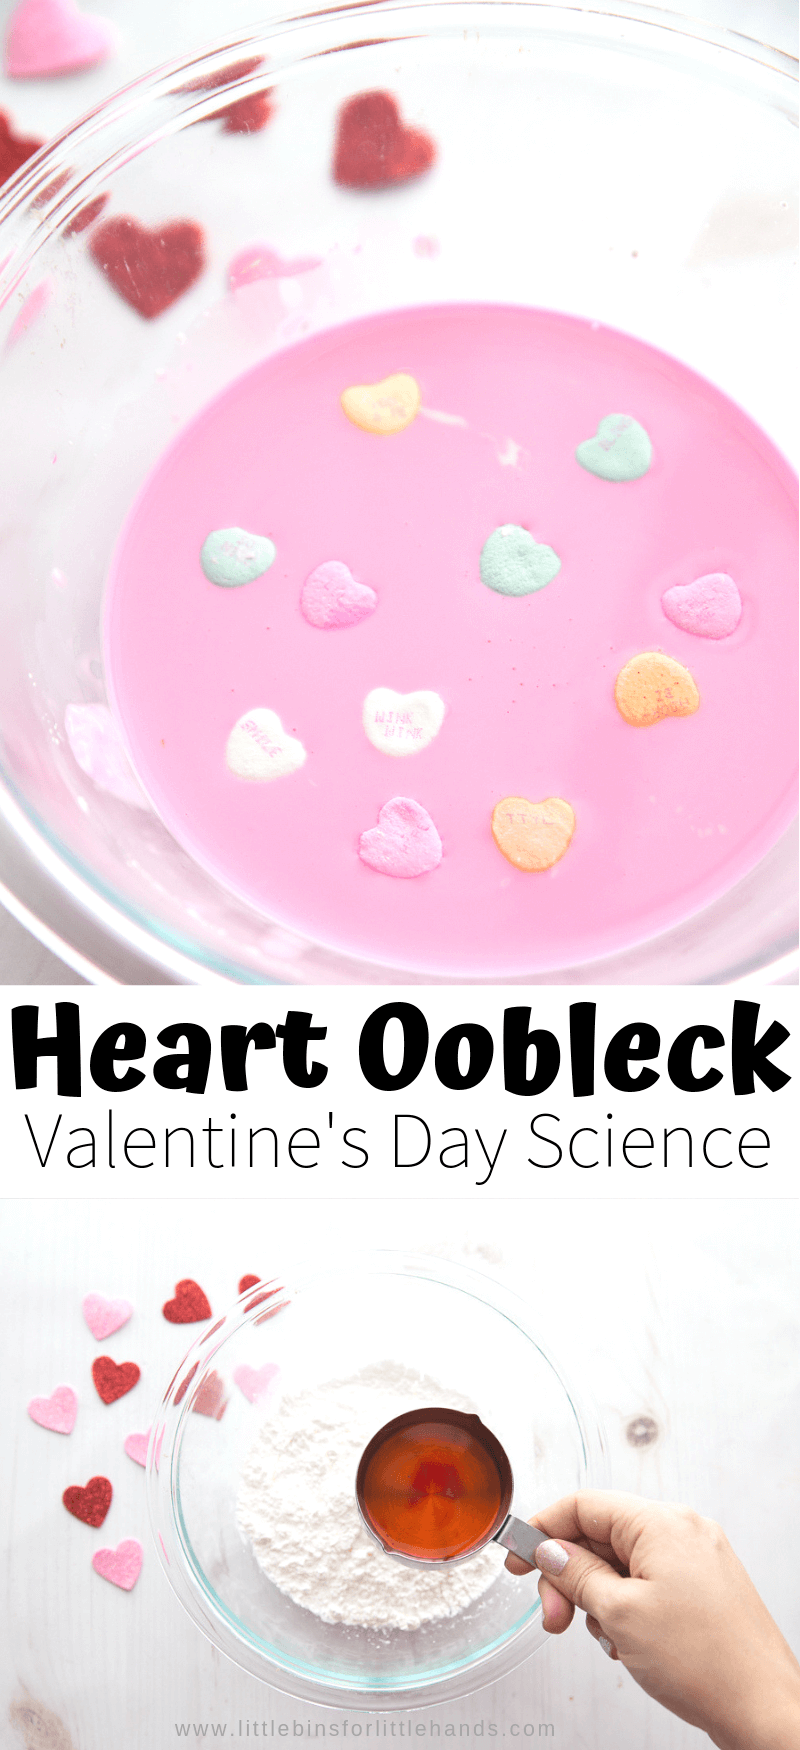 Candy heart oobleck activity for easy Valentine's Day Science, STEM, and sensory play!